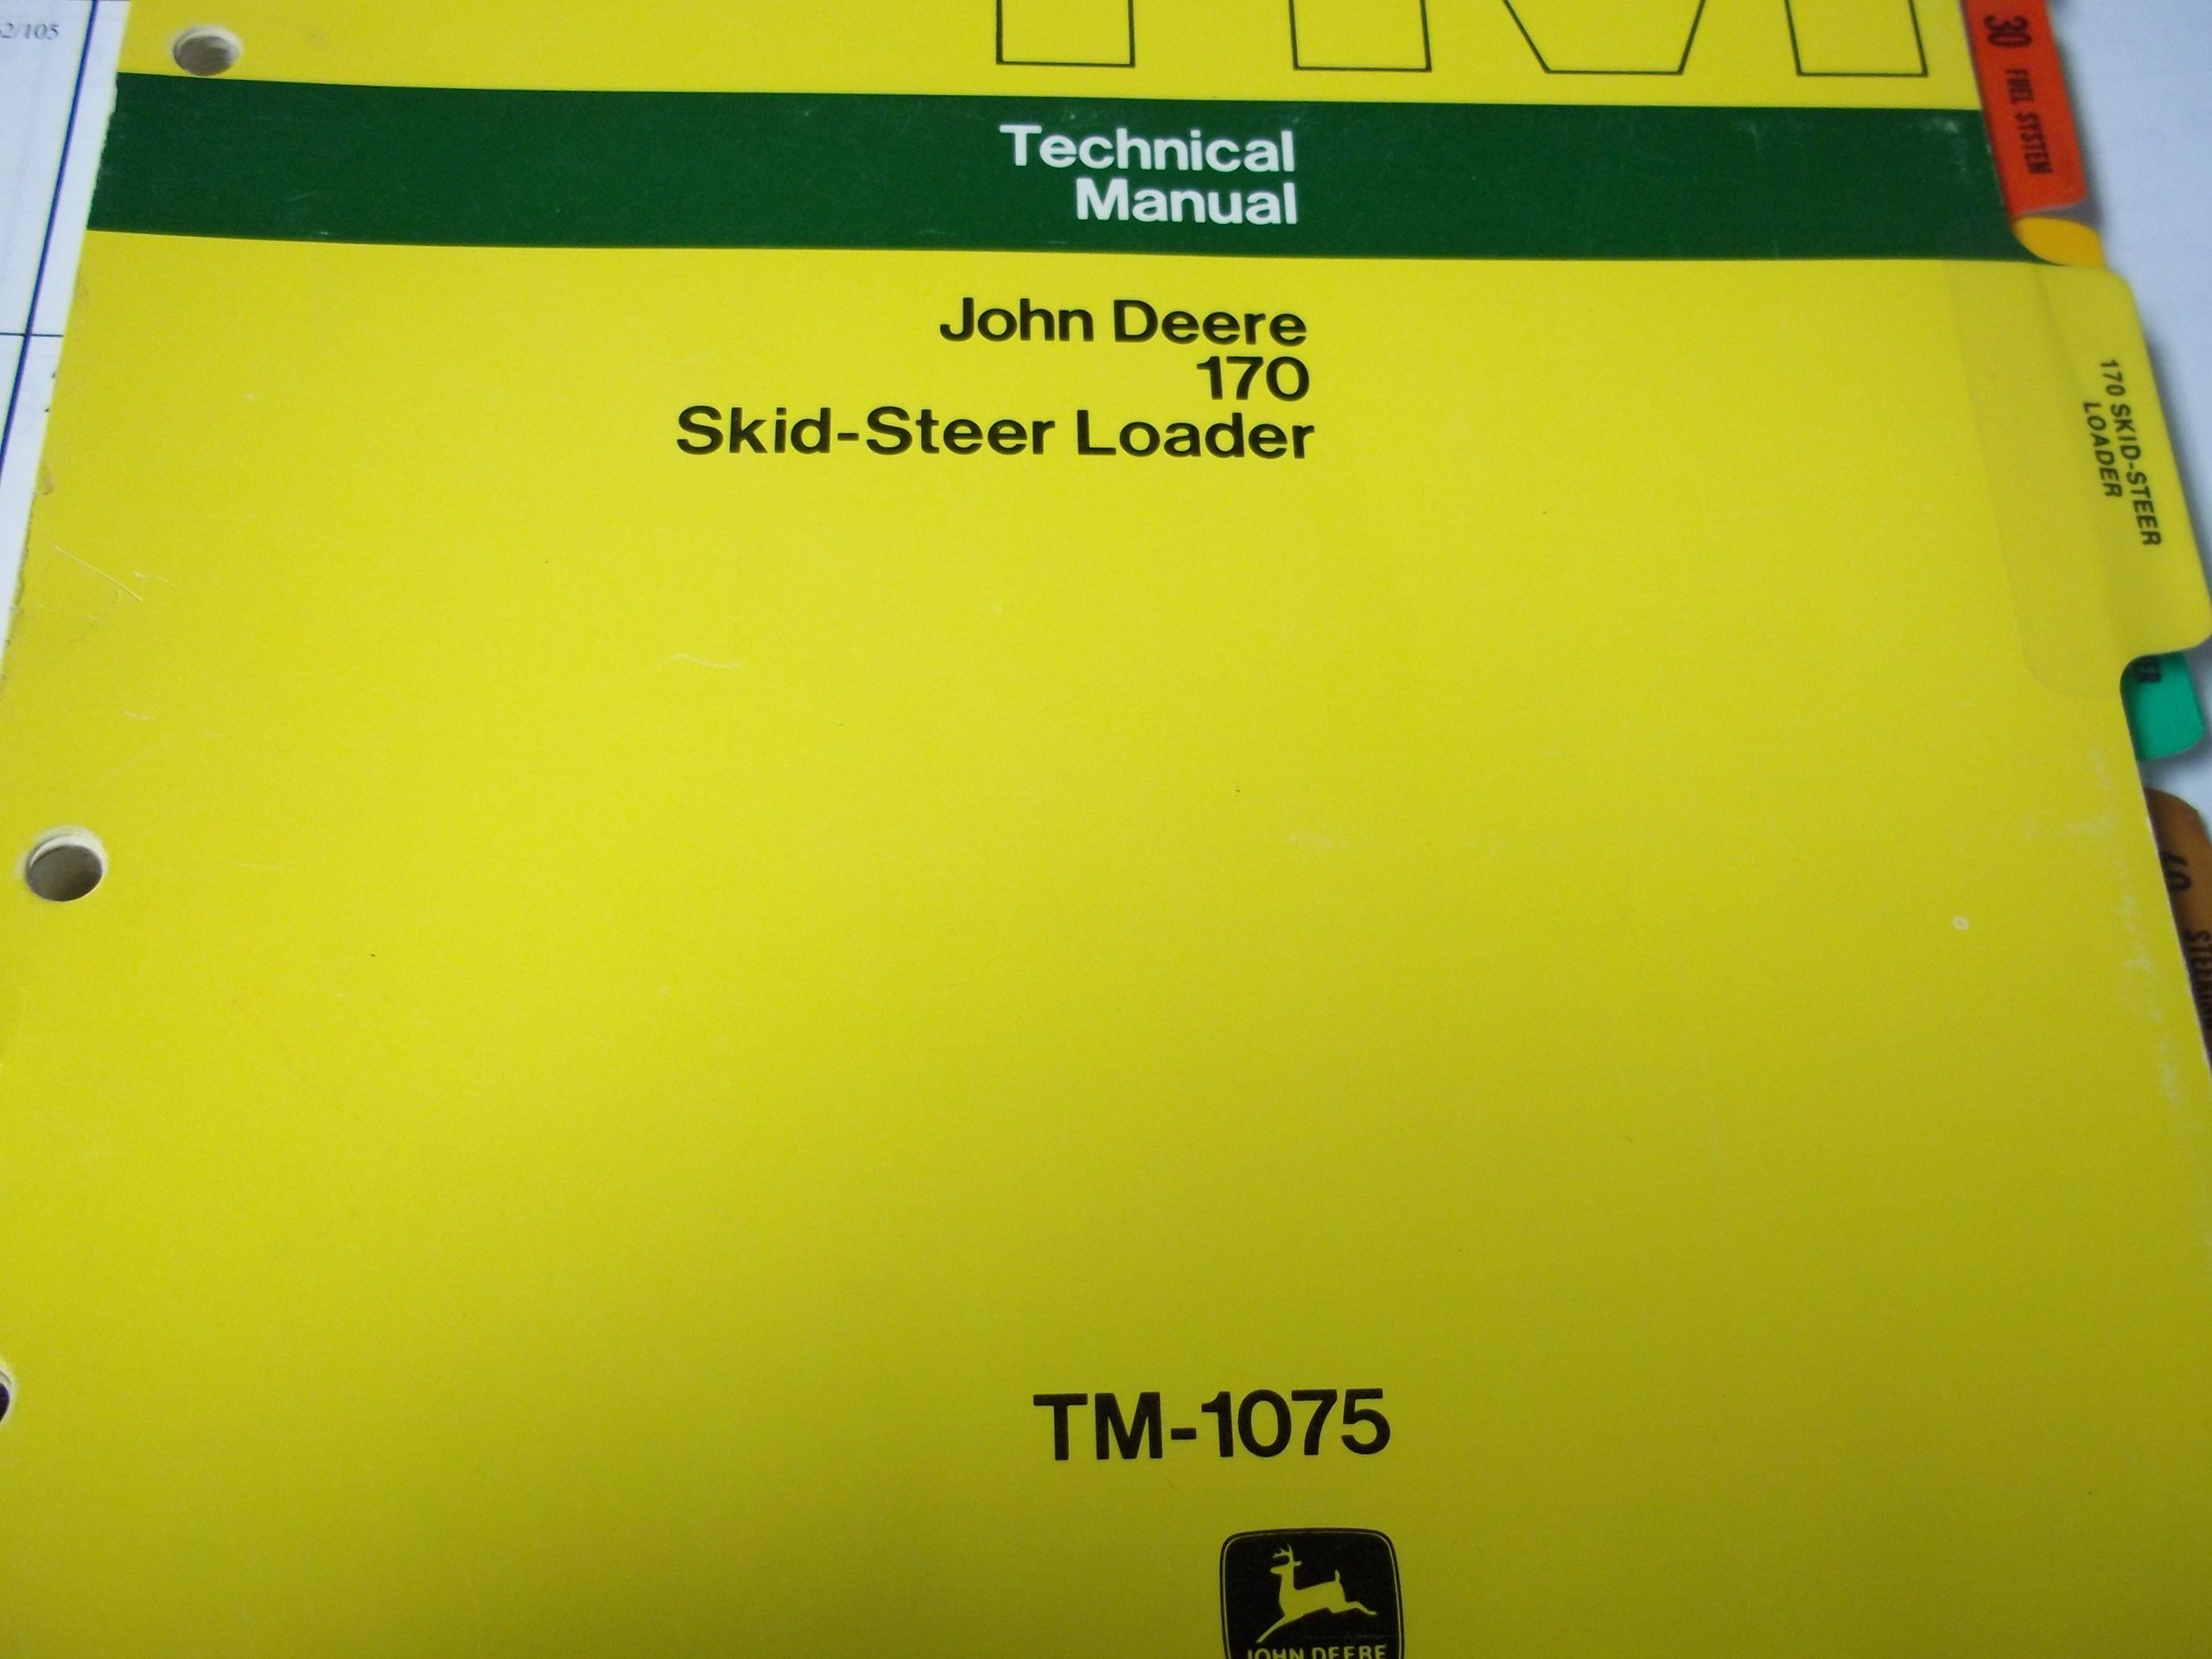 John Deere 170 Skid Steer Loader Technical Manual Tm 1075 John